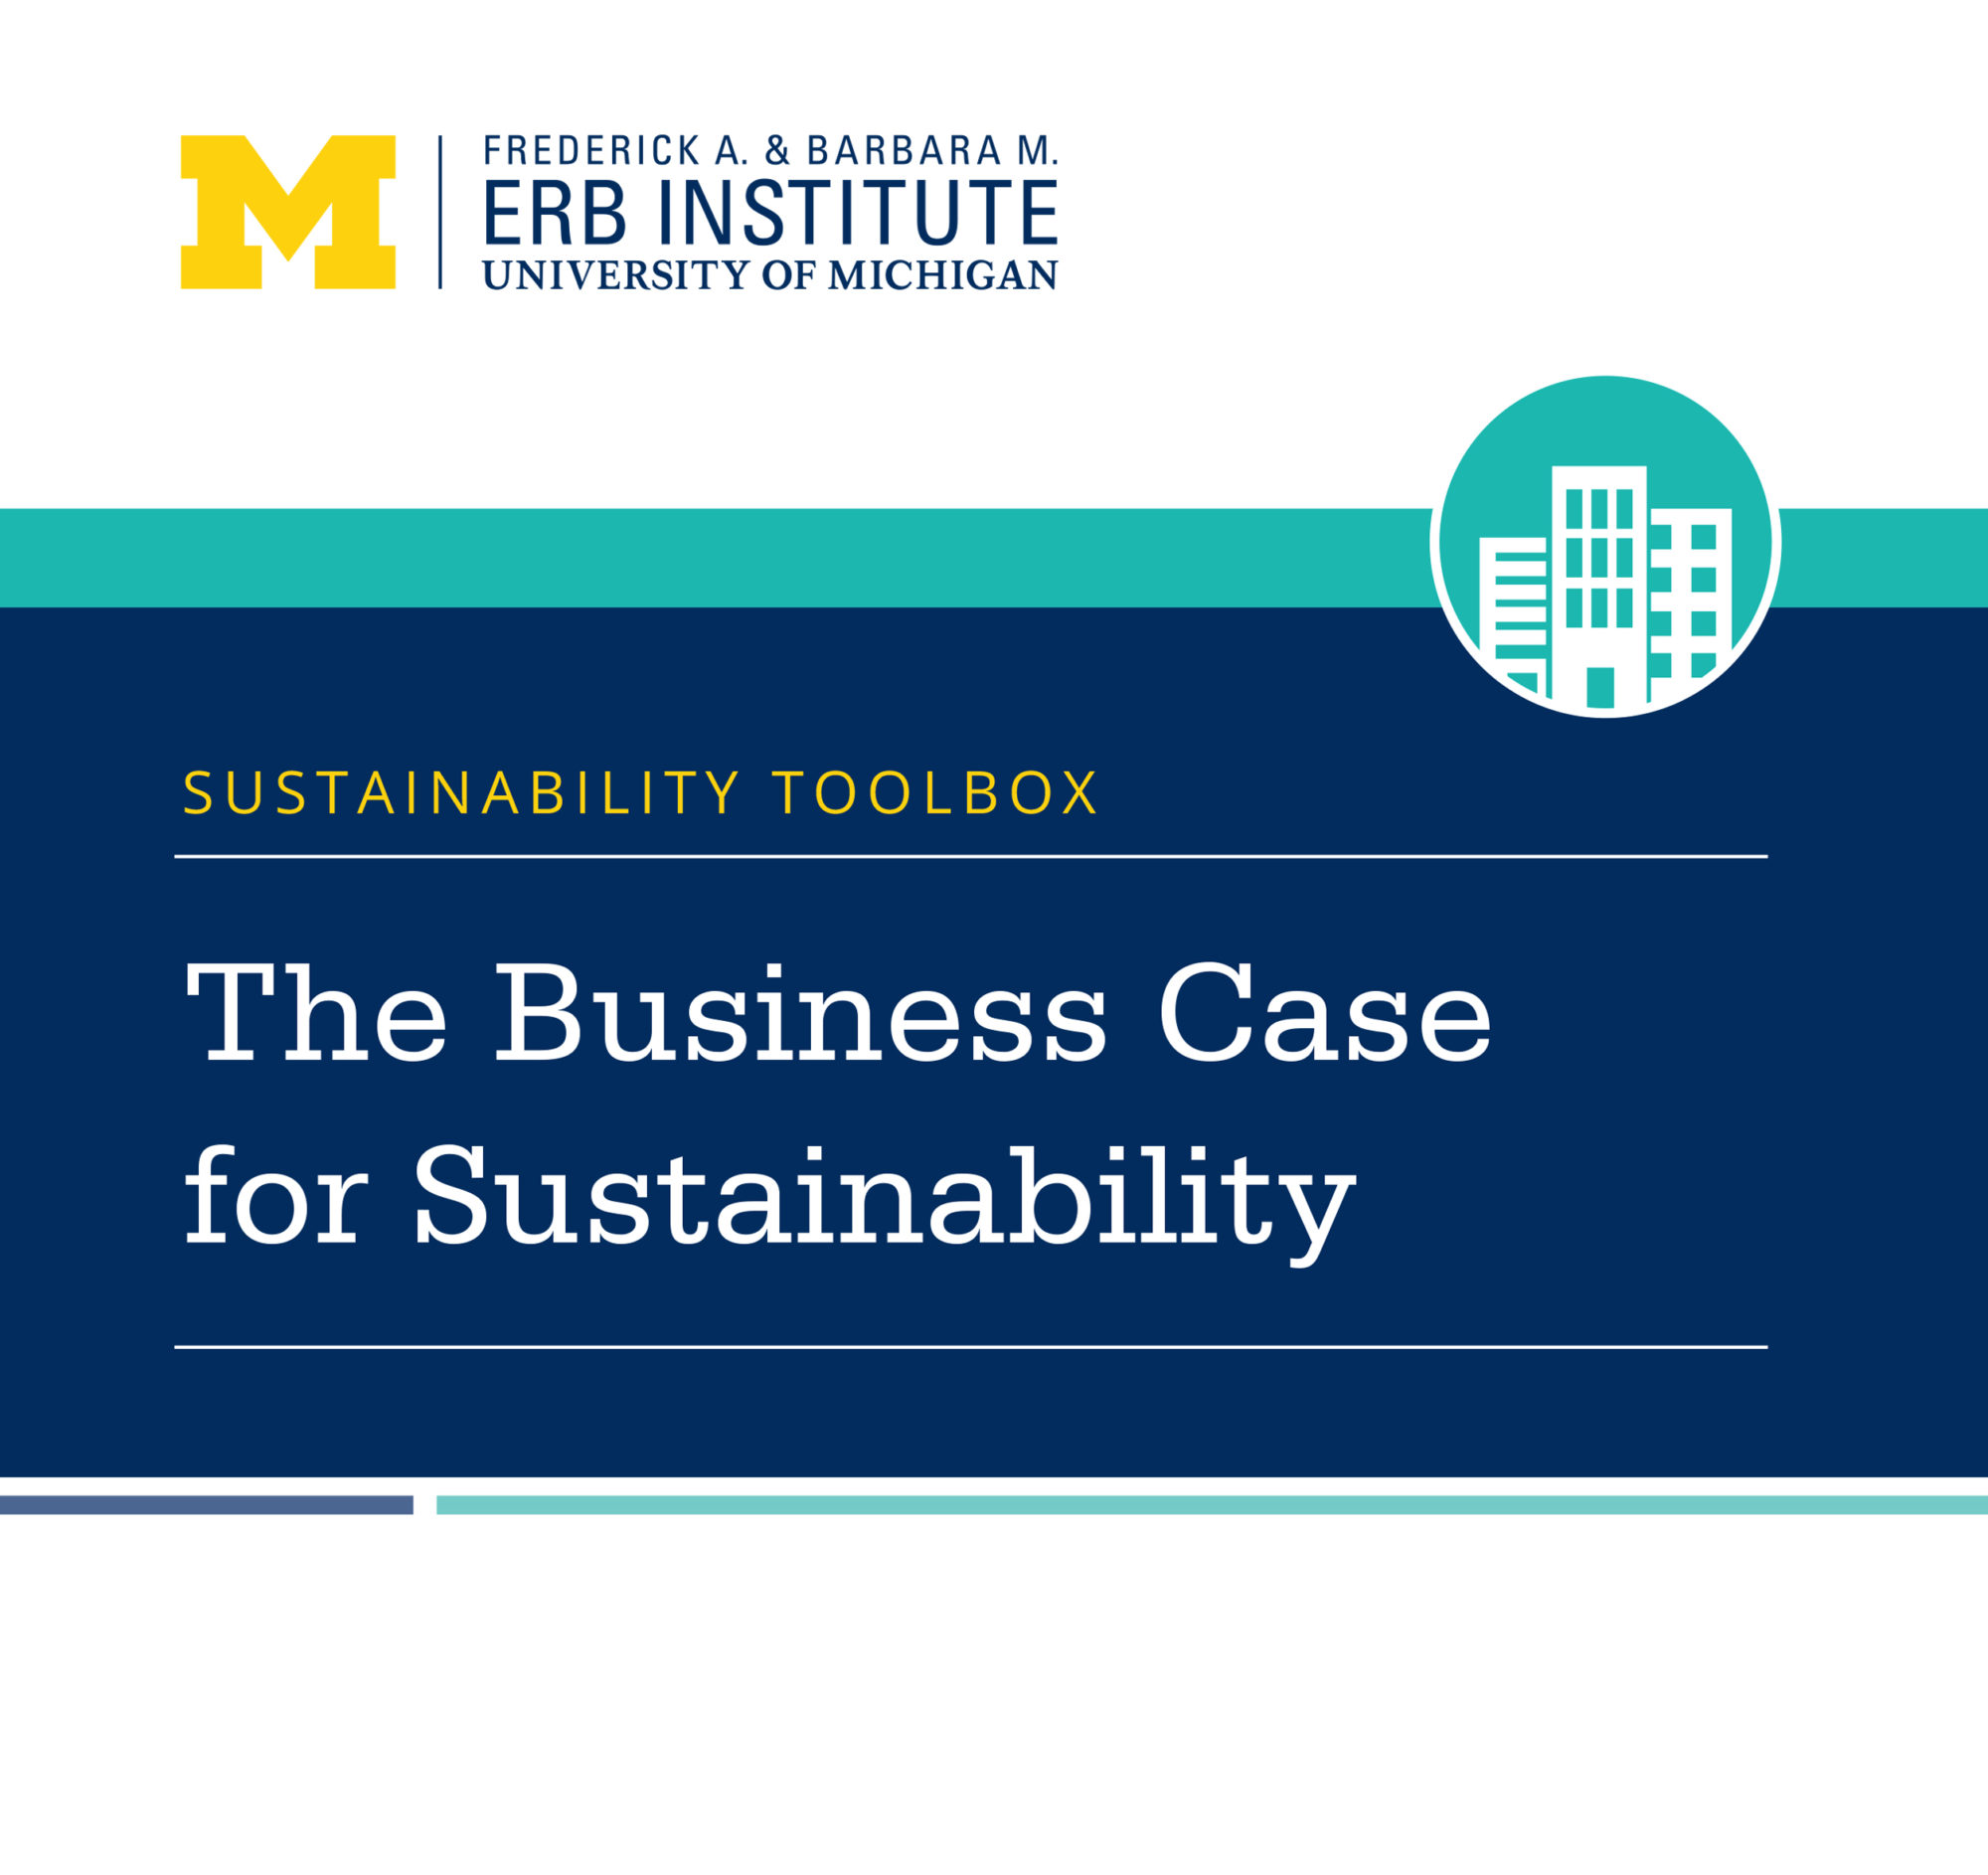 Sustainability Toolbox: The Business Case for Sustainability